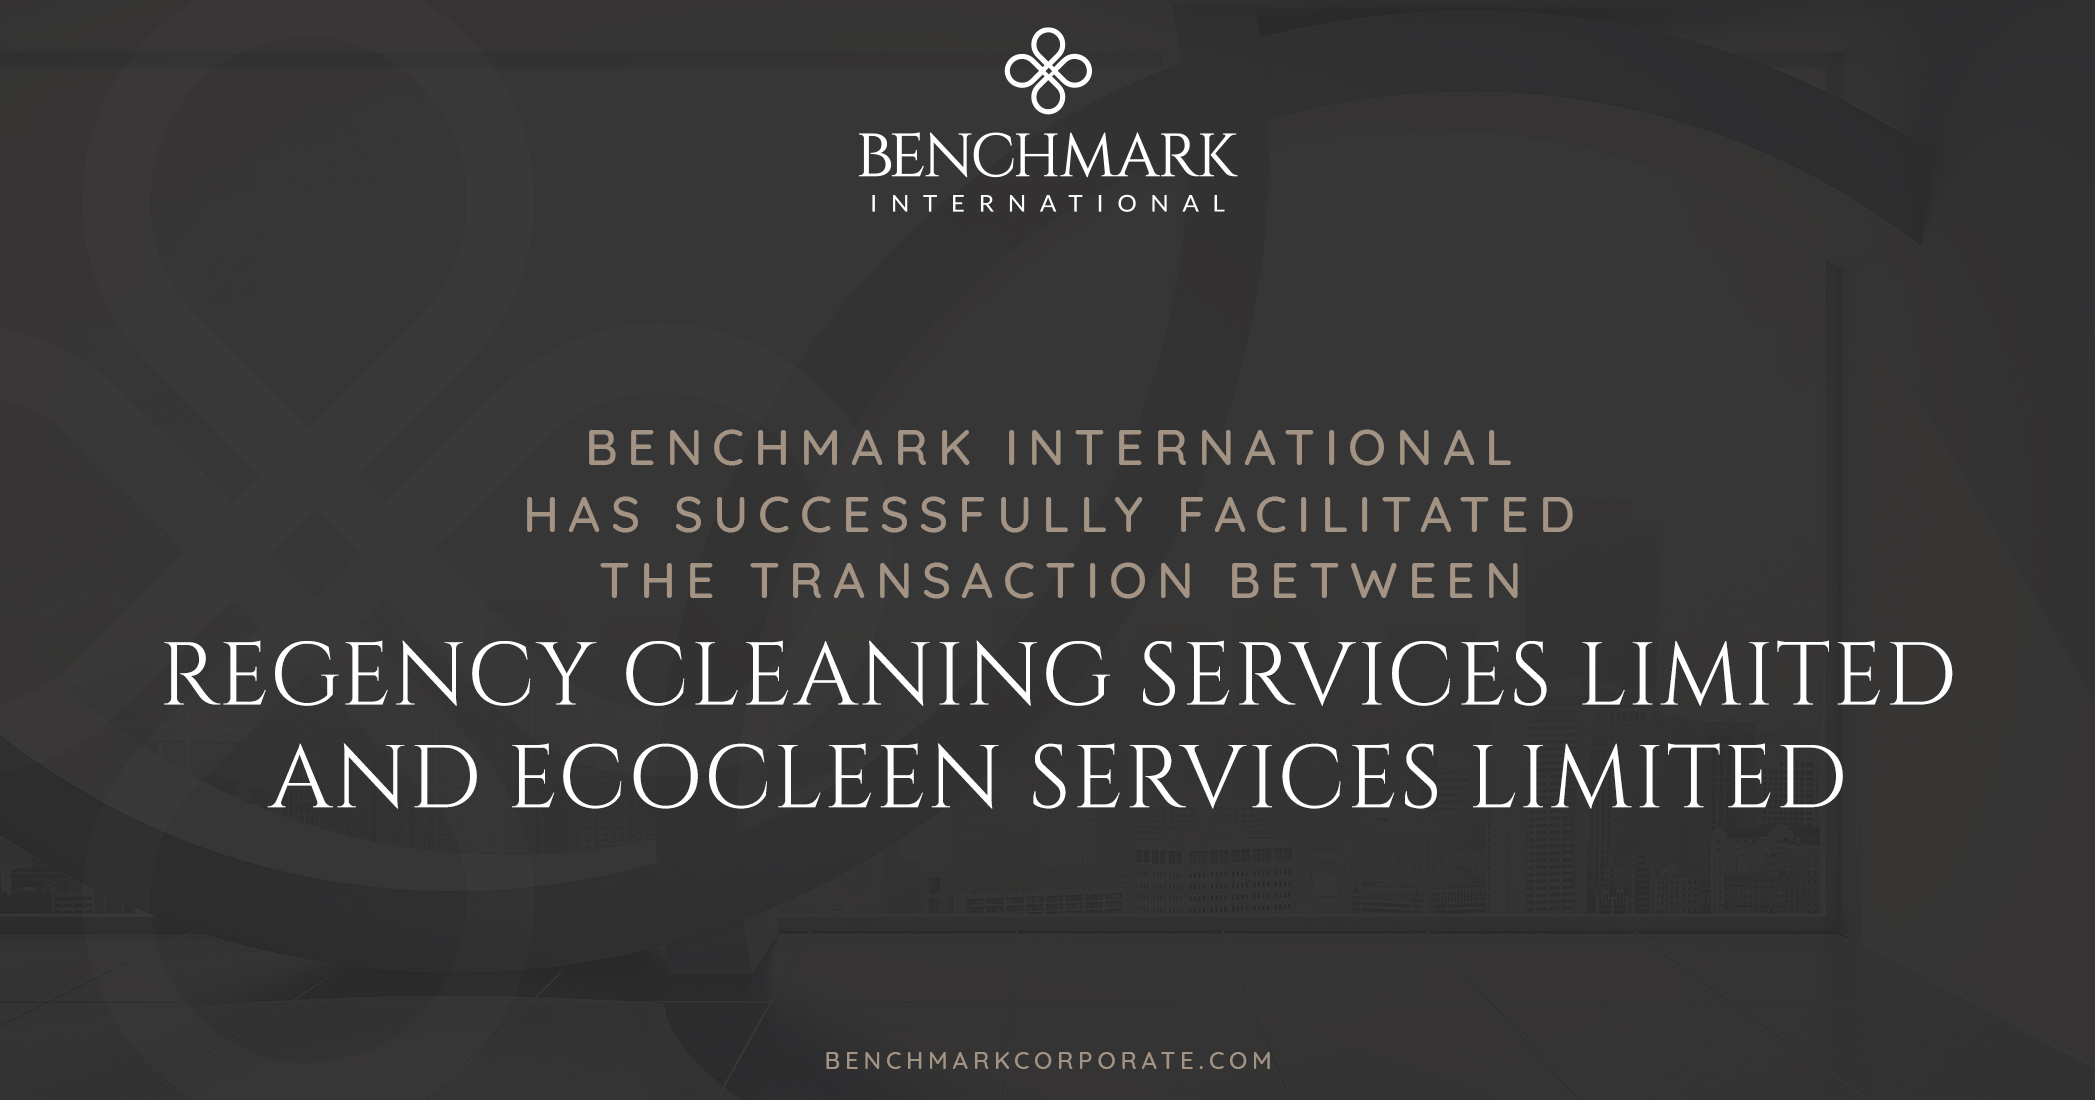 Benchmark International has Successfully Facilitated the Transaction Between Regency Cleaning Services Limited and Ecocleen Services Limited